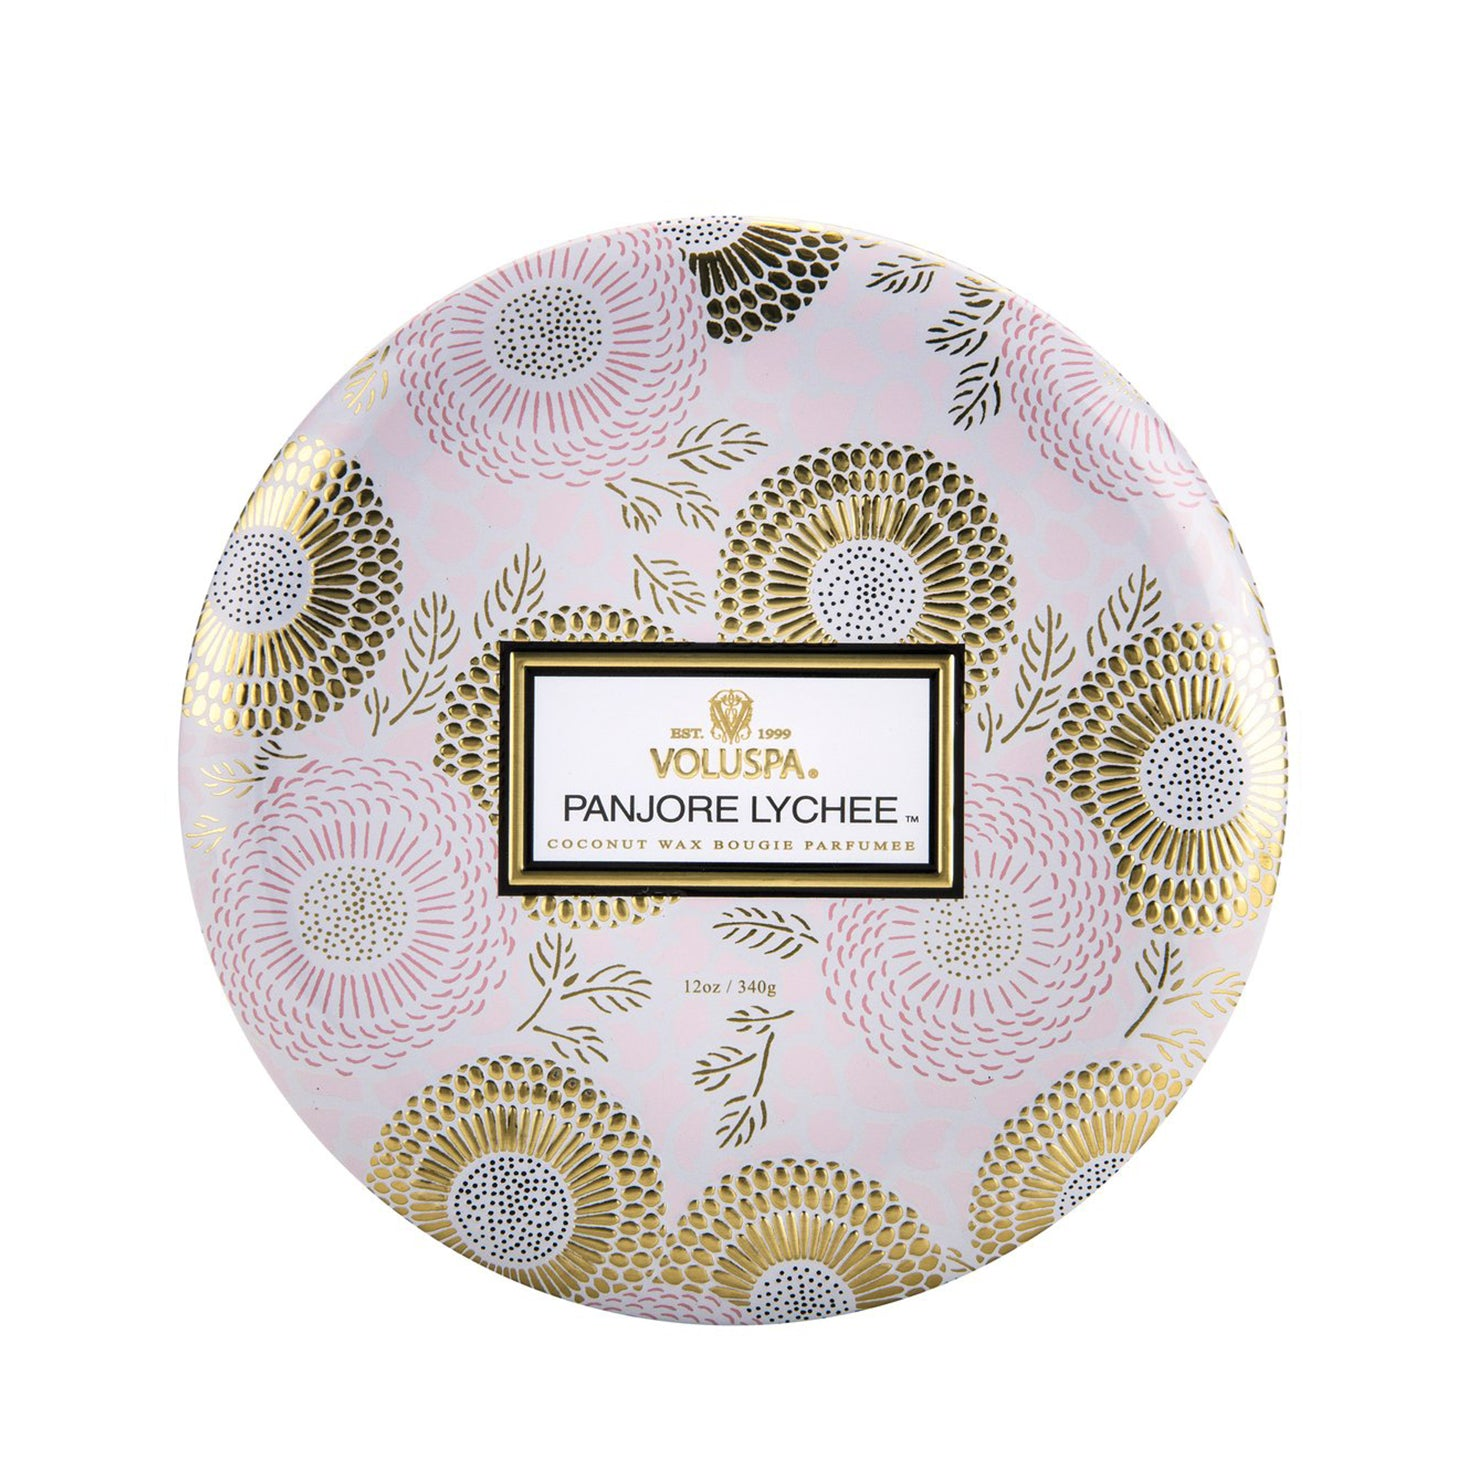 VOLUSPA Panjore Lychee 3 Wick Candle